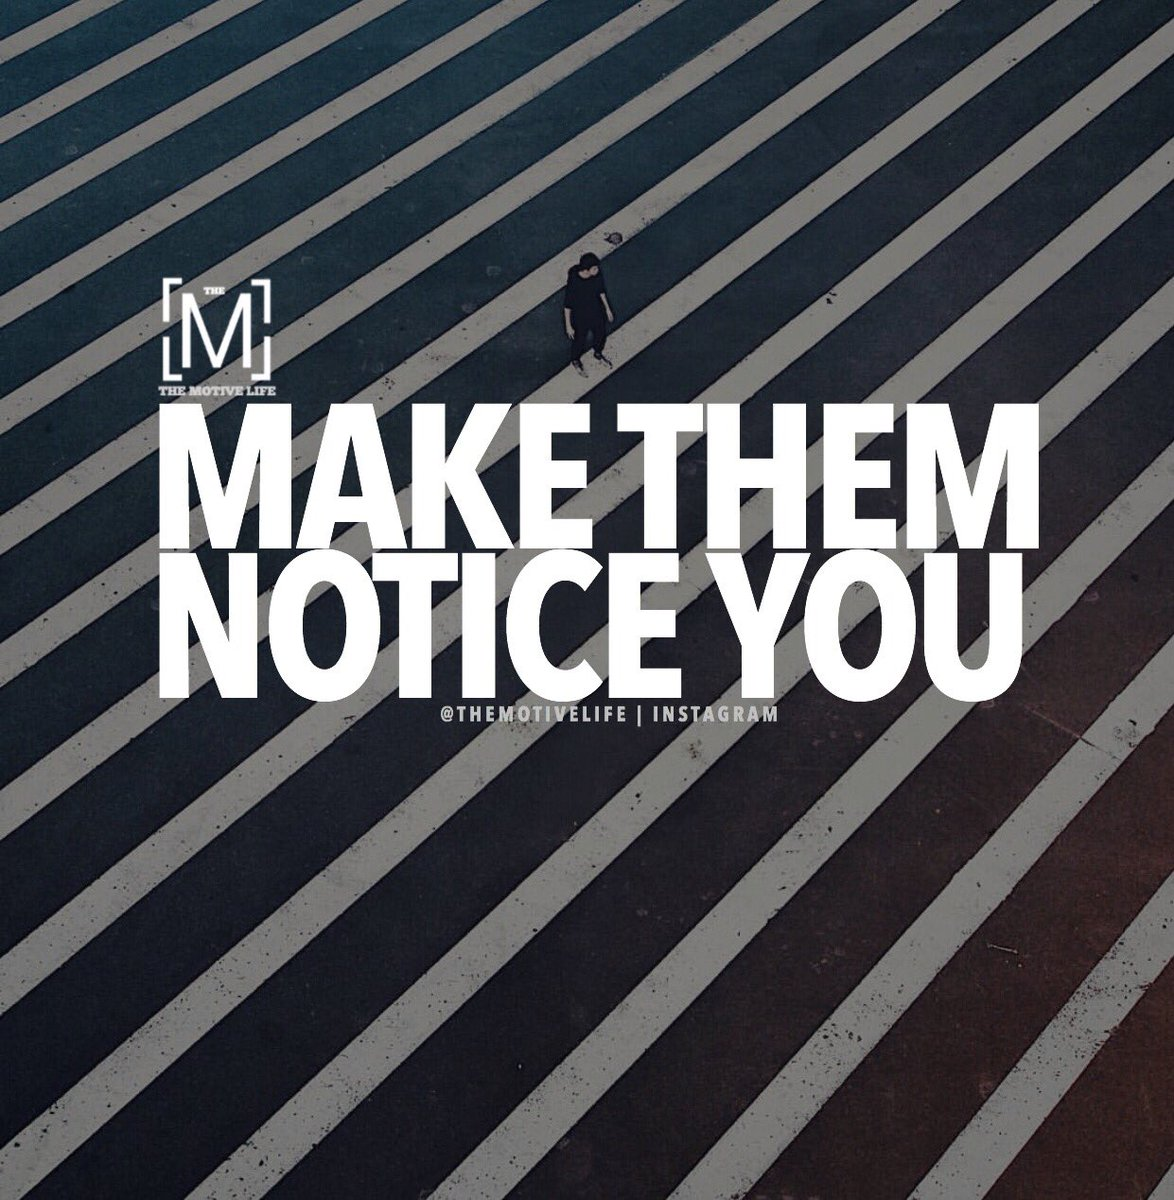 You have to stand out from the crowd.  #ambition #educate #Entrepreneur #motivate #motivation #inspire #inspiraton #goals #influence #goal<br>http://pic.twitter.com/zidSYTX67U